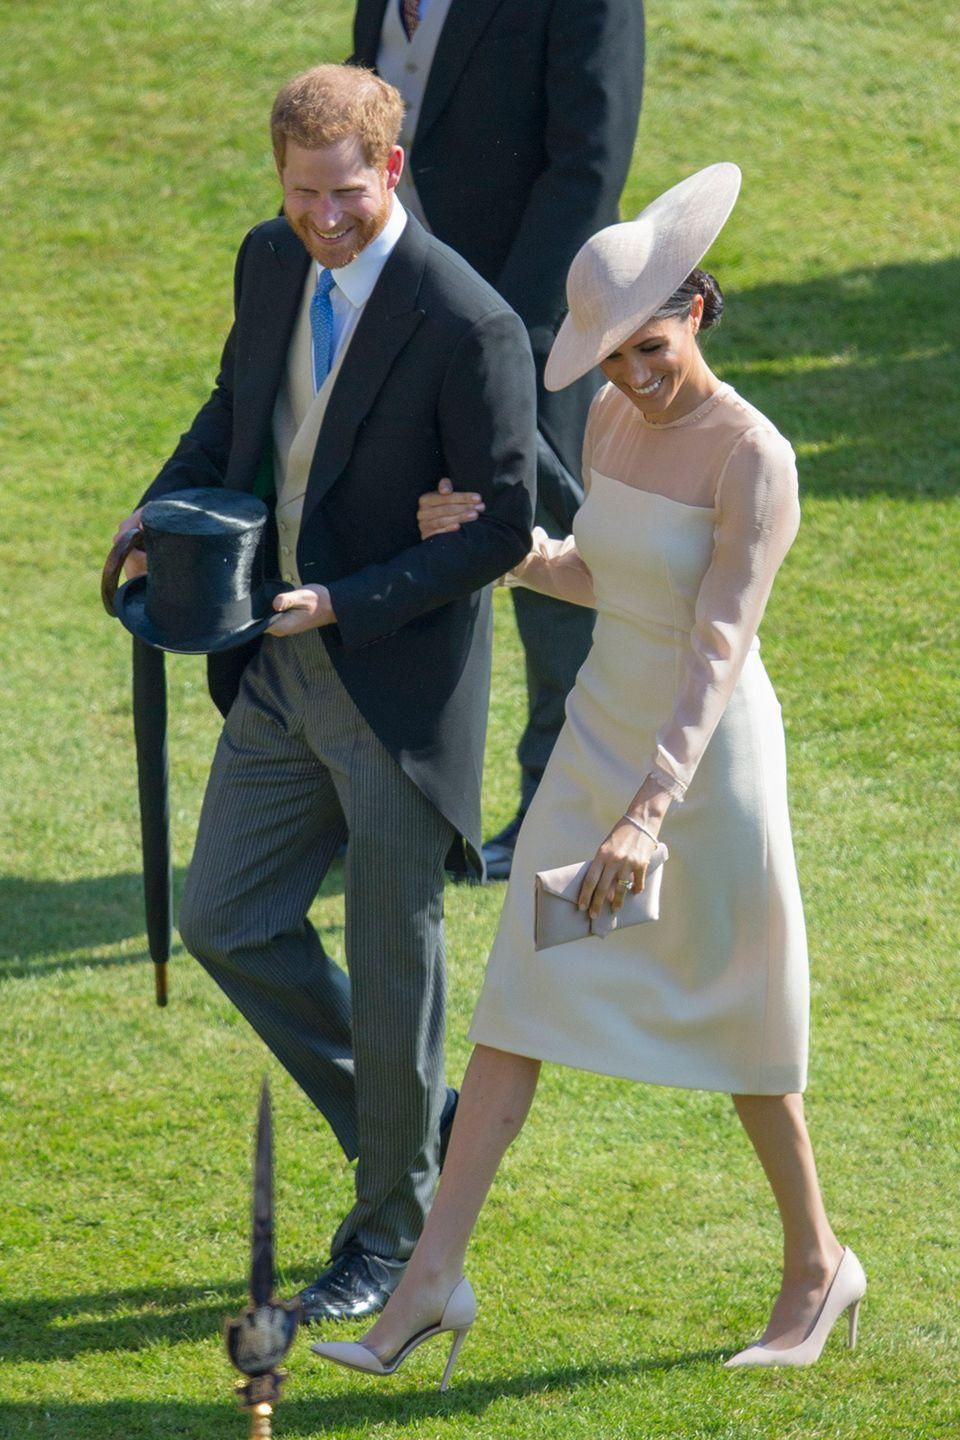 <p>In their first public appearance as husband and wife after the wedding, Meghan lovingly walked arm-in-arm with Harry as they attended Prince Charles' 70th Birthday Patronage Celebration in the grounds of Buckingham Palace.</p>